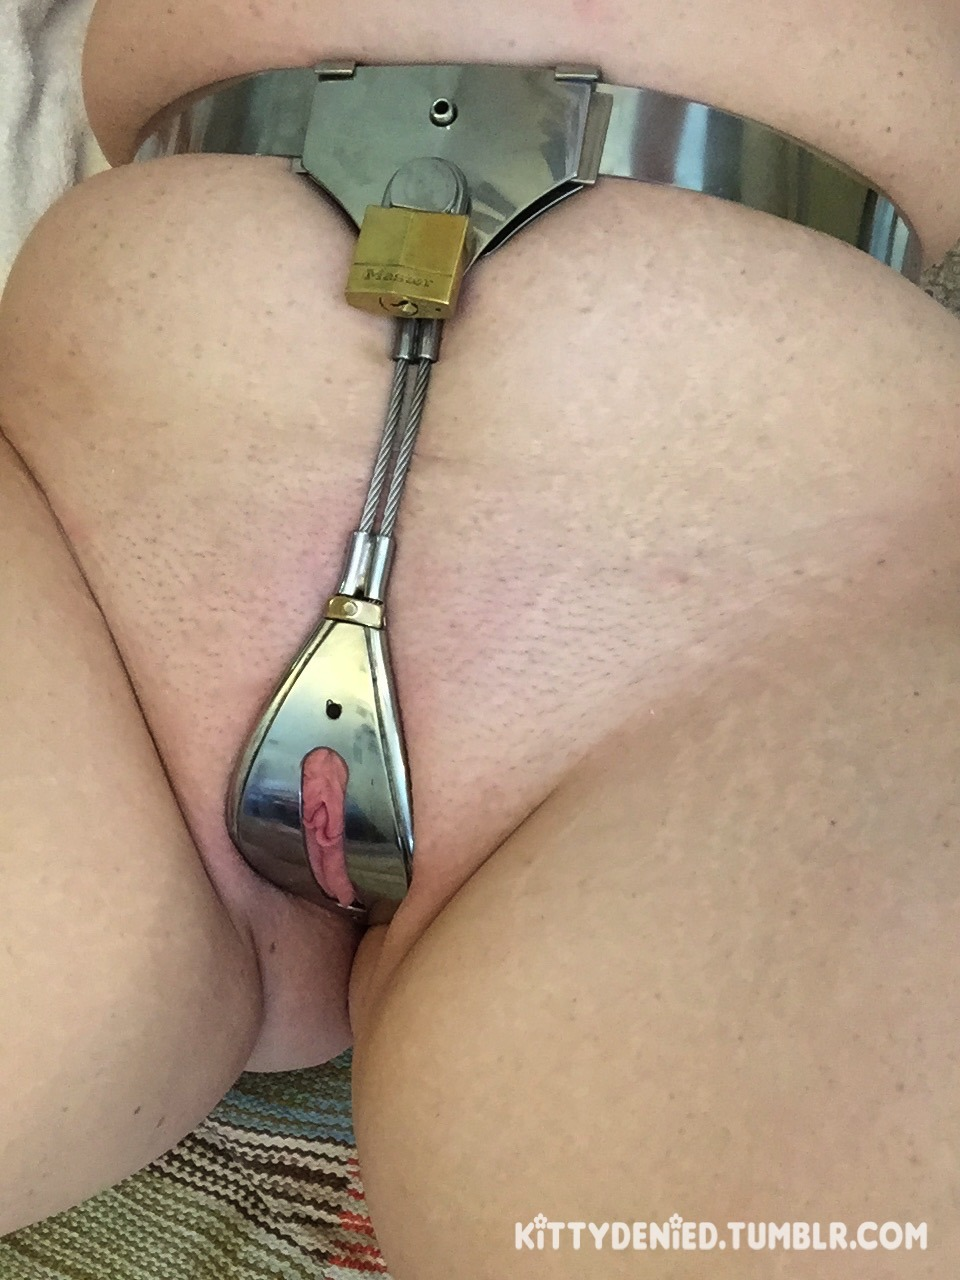 clit shield chastity piercing - DATAWAV